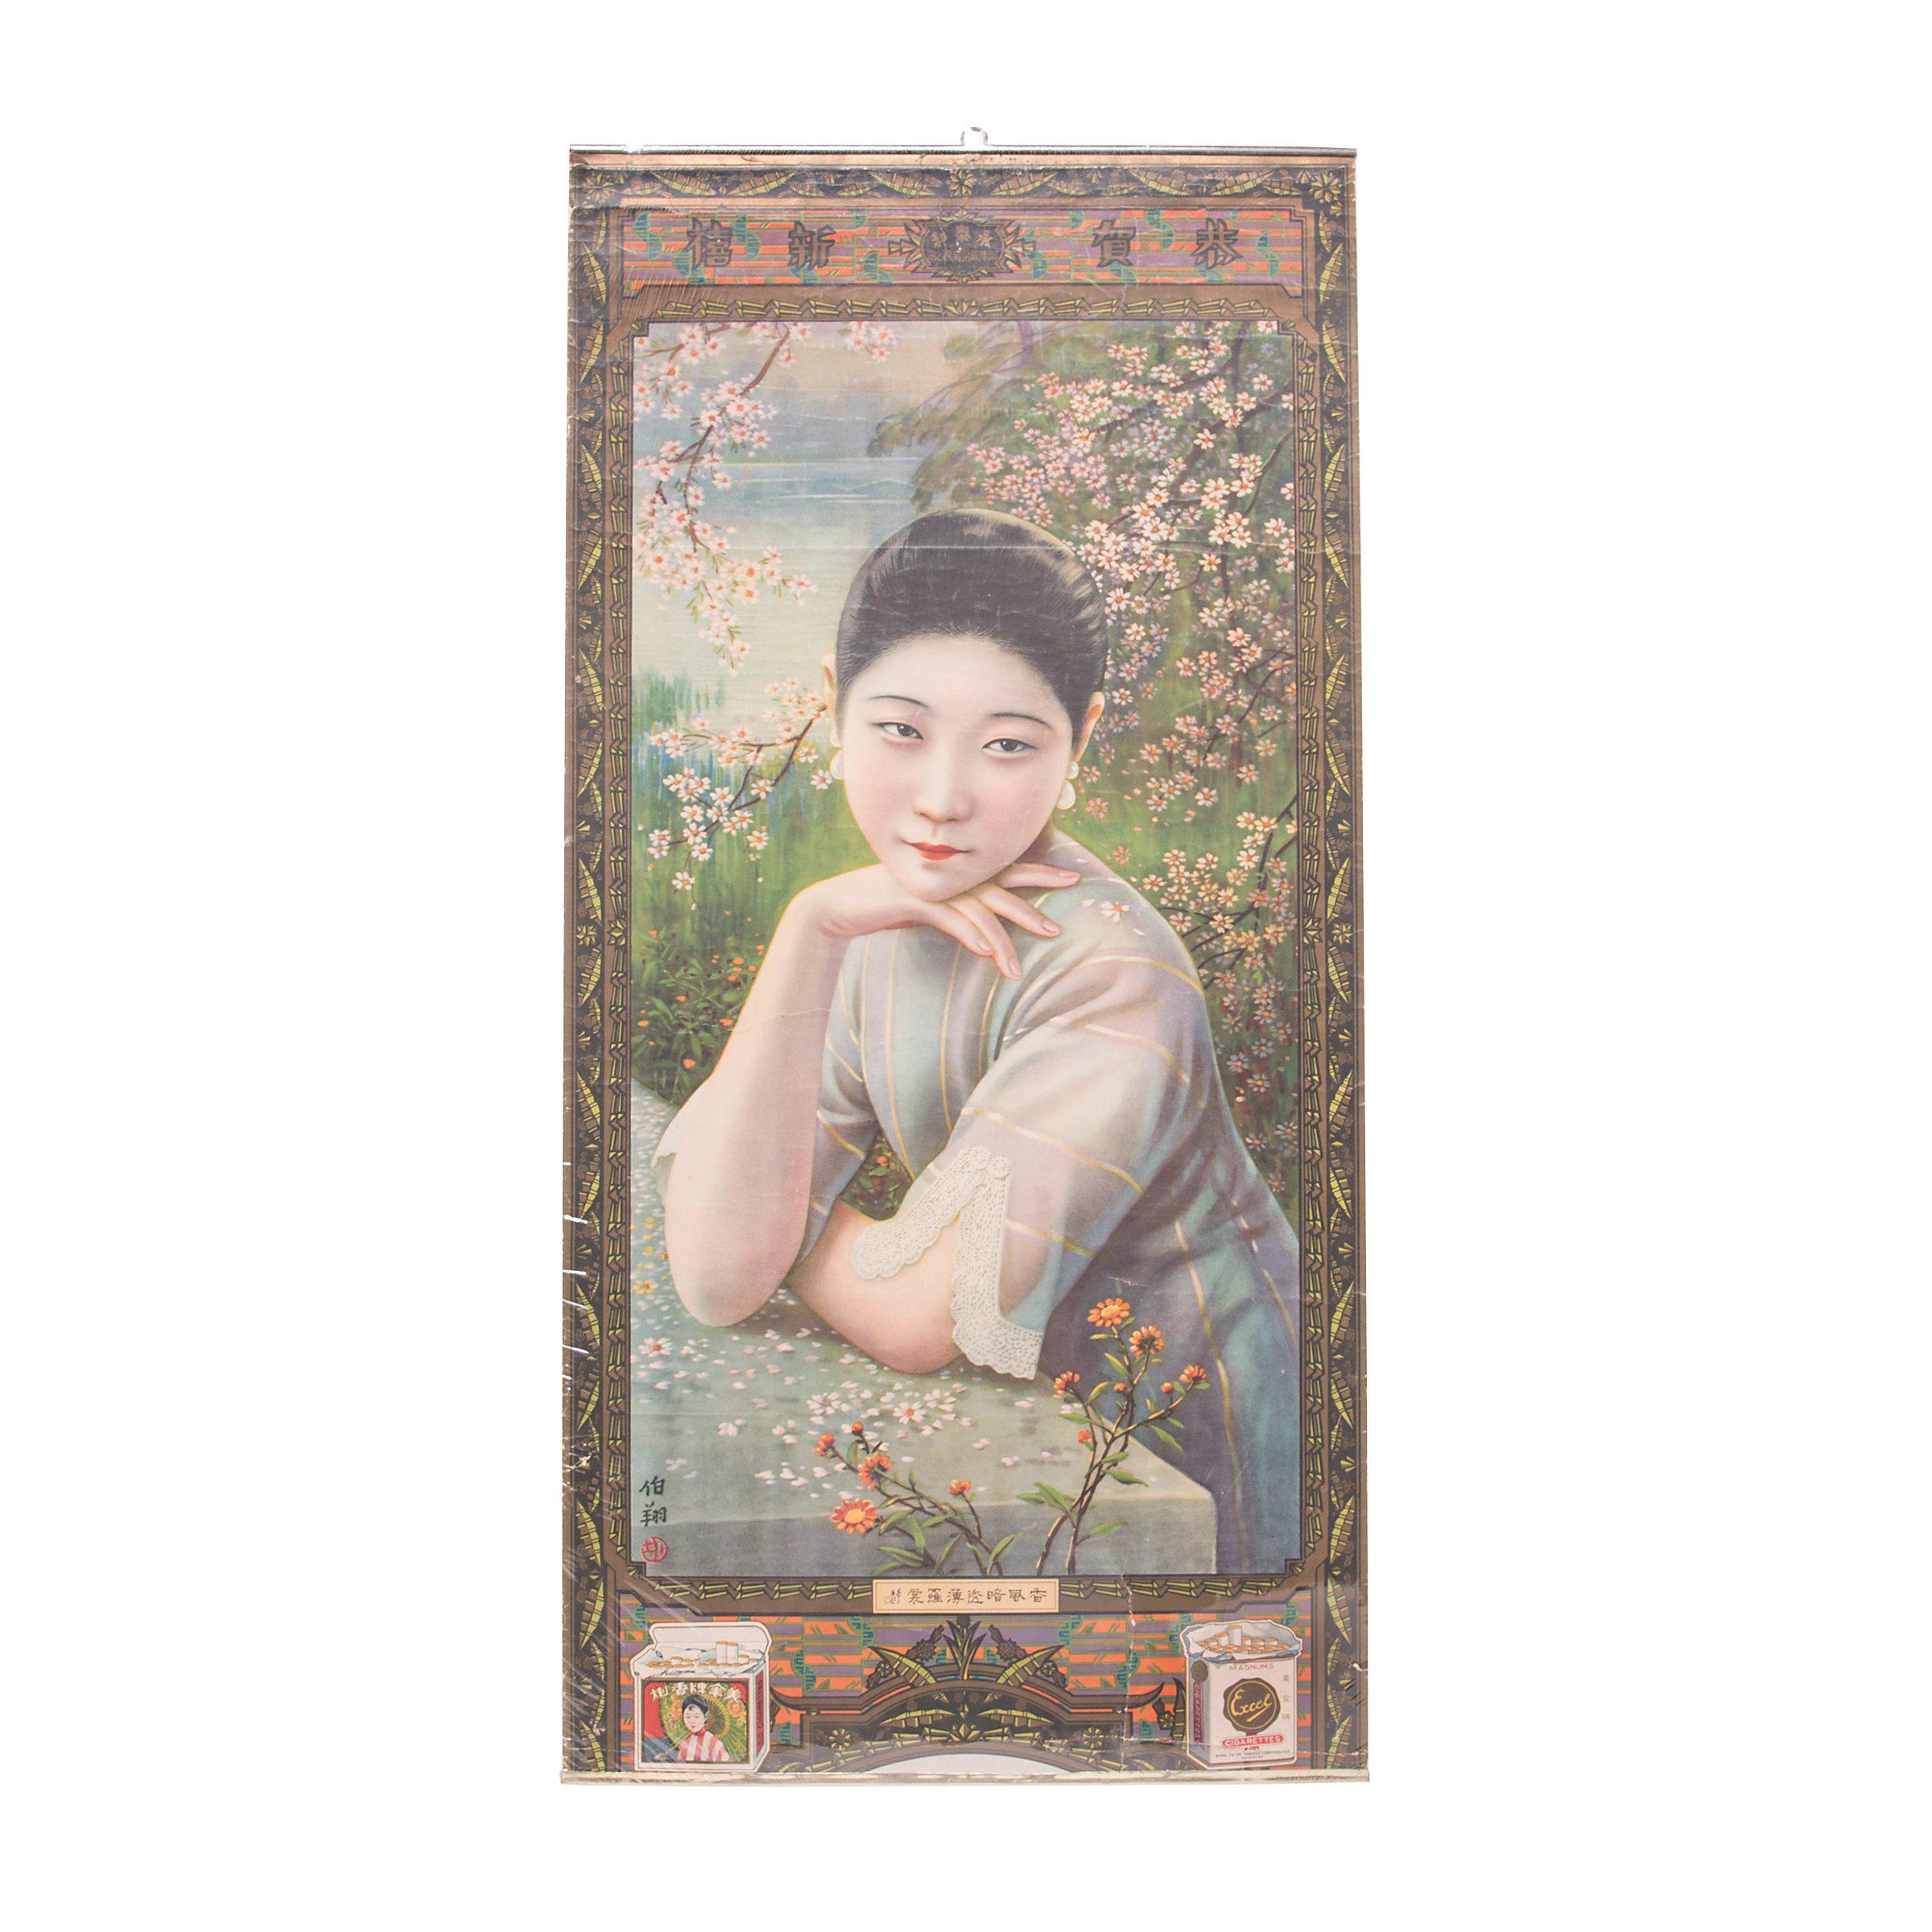 Vintage Chinese Deco Excel Cigarettes Advertisement Poster